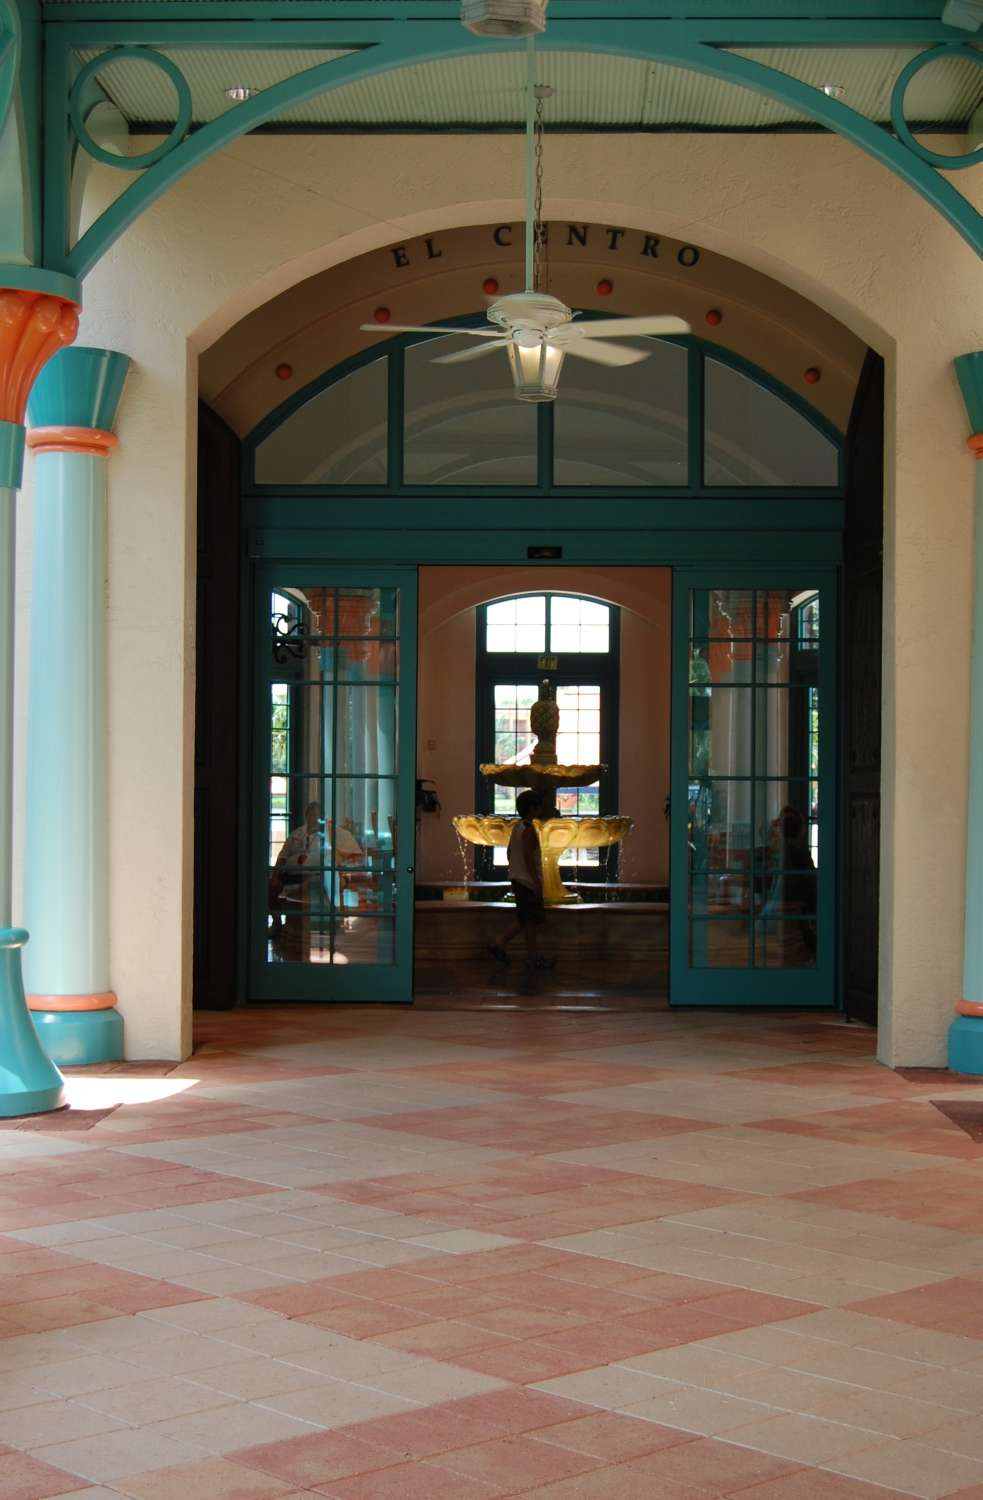 coronado-springs-003-Resort-Entrance.JPG